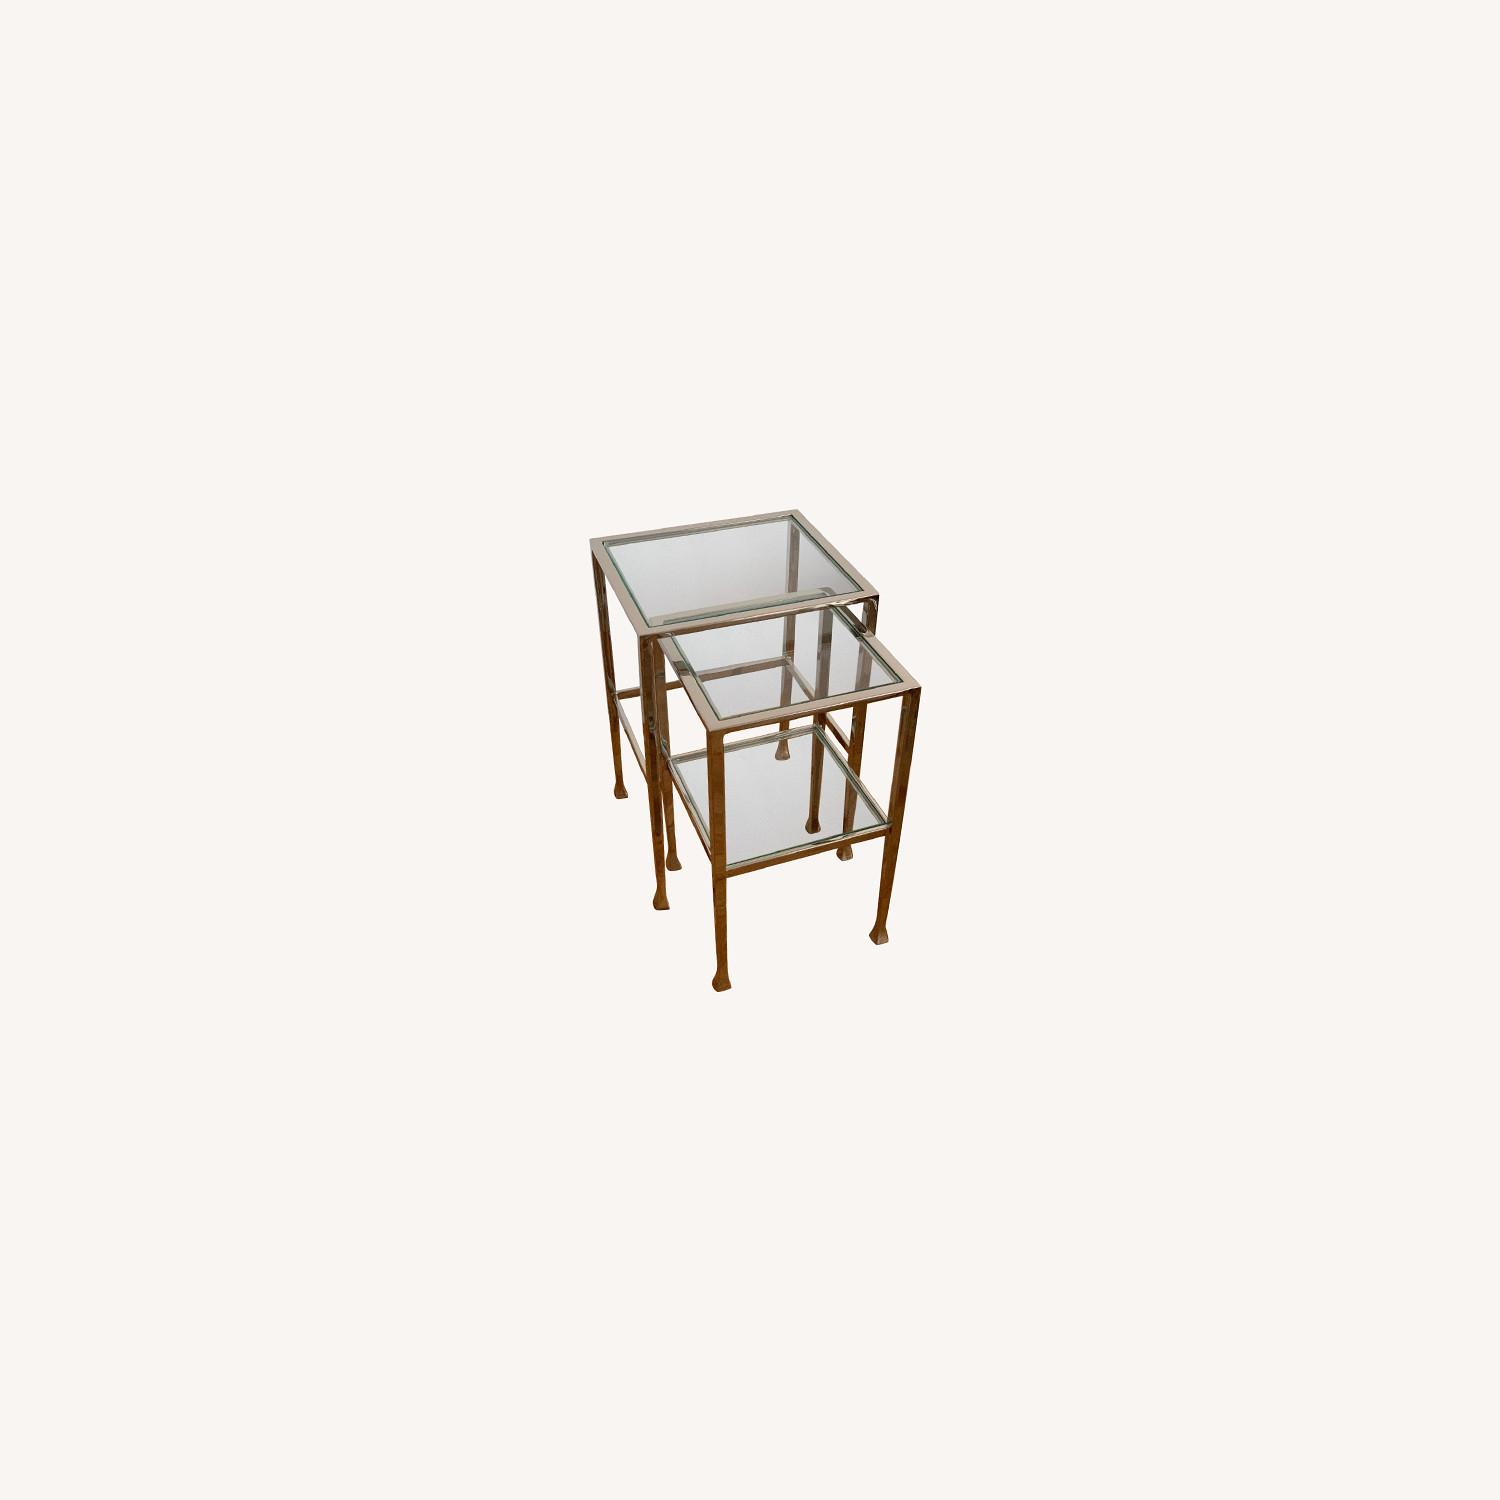 Pottery Barn Nickel End Tables - image-0